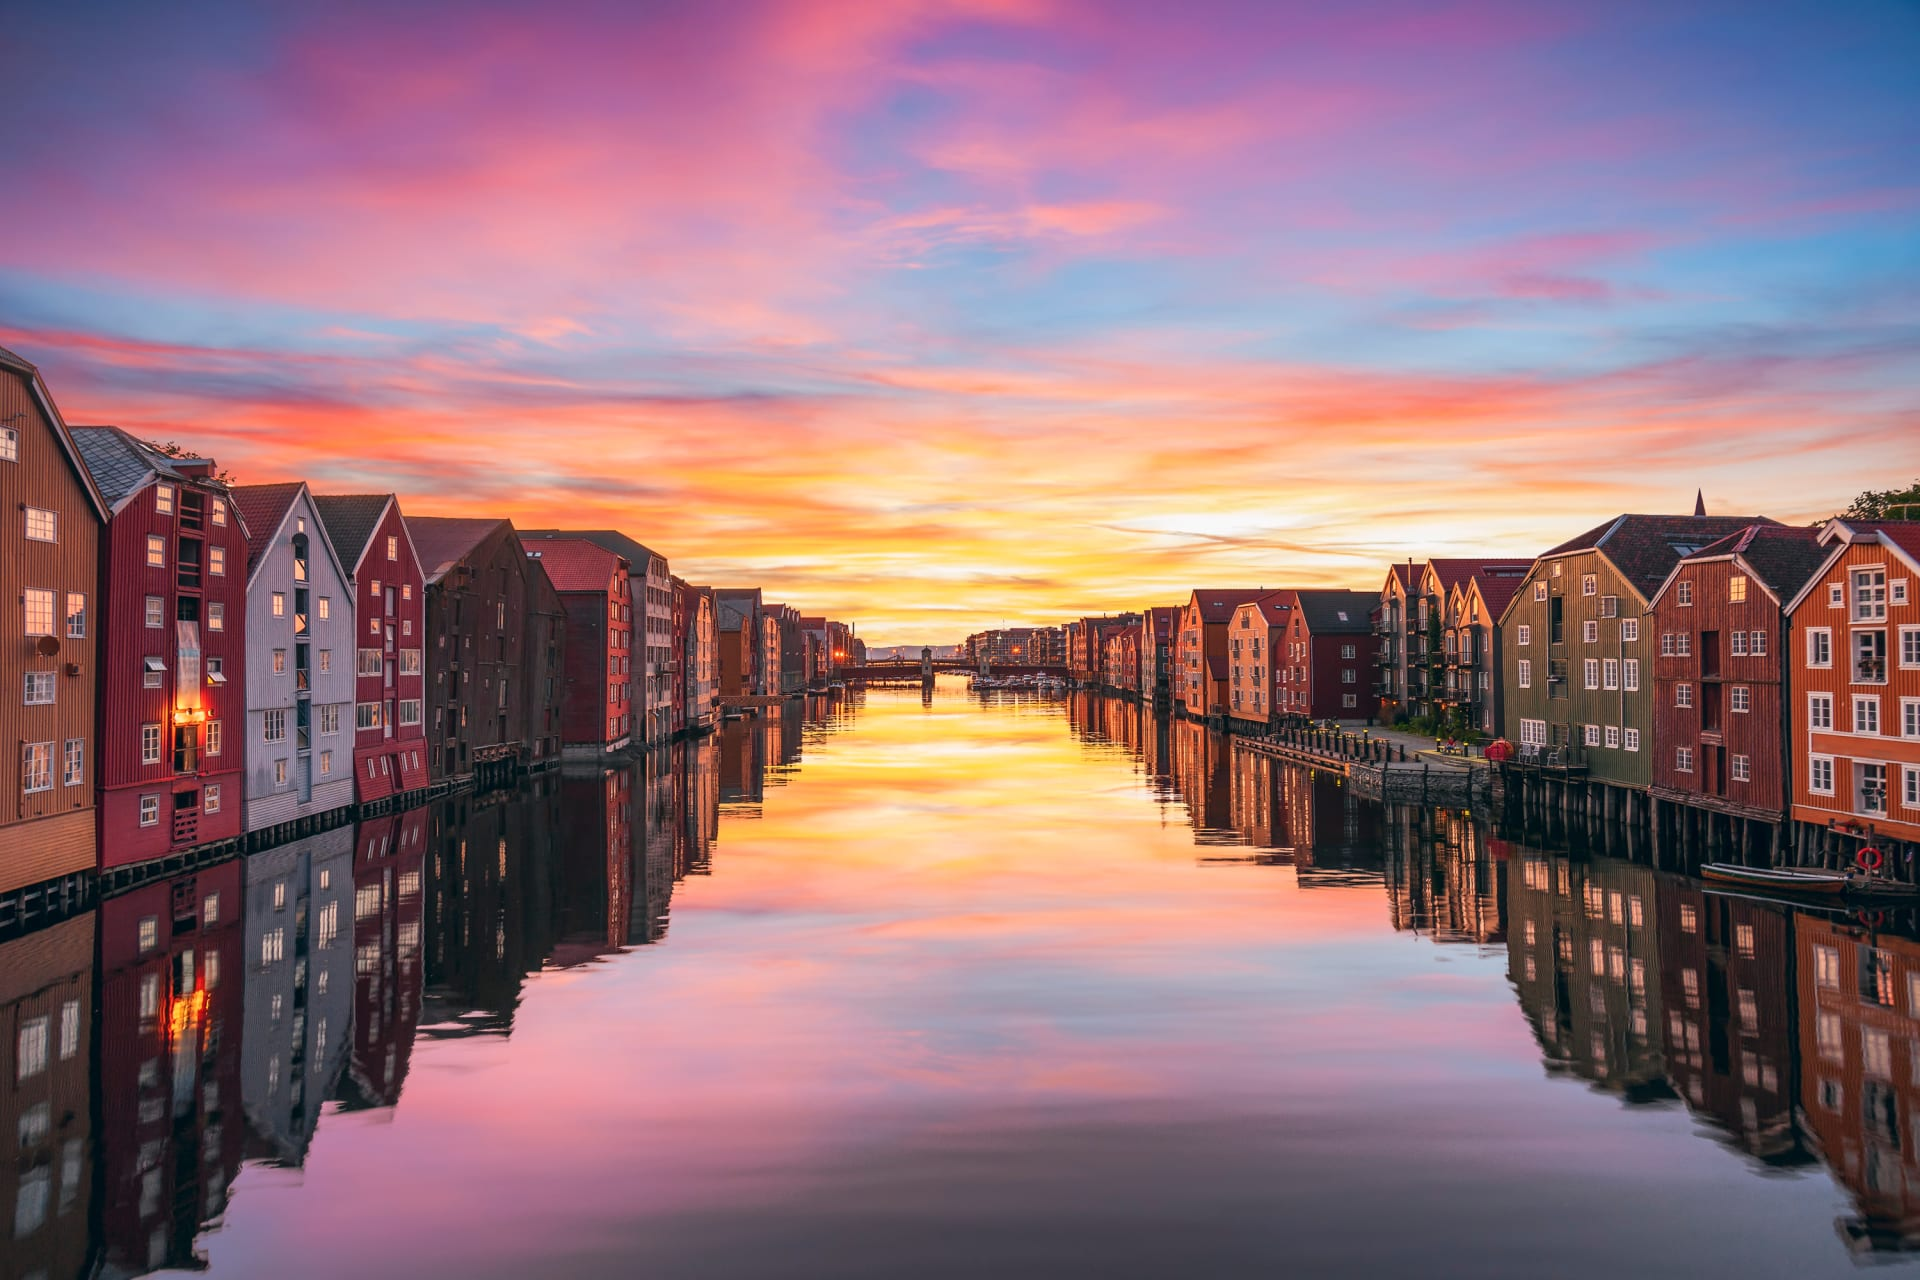 Trondheim cover image